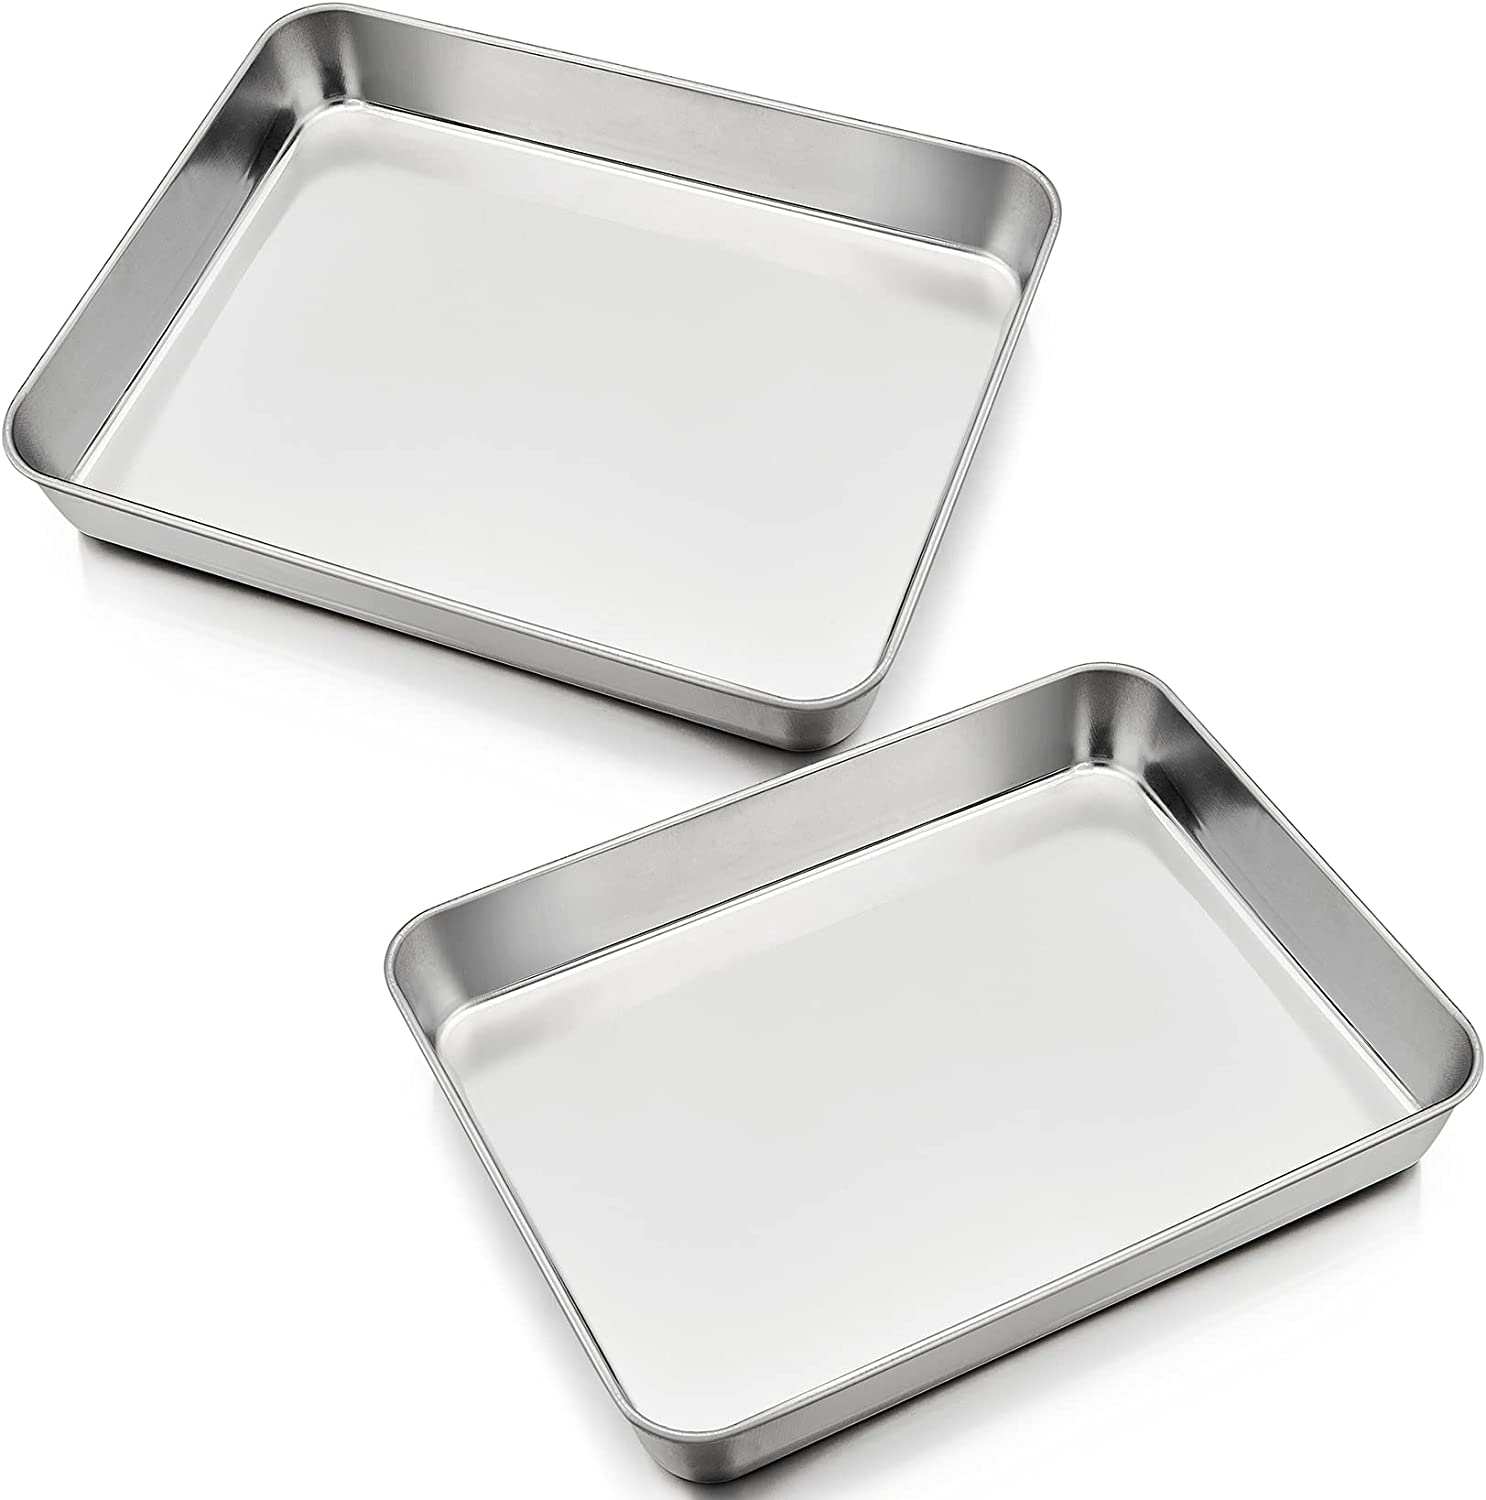 9.3 Inch Toaster Oven Pan Set of 2, P&P CHEF Stainless Steel Baking Pan for Small Toaster Oven, Rectangle Shape & 1.75-Inch Rim, Brush Finished & Dishwasher Safe